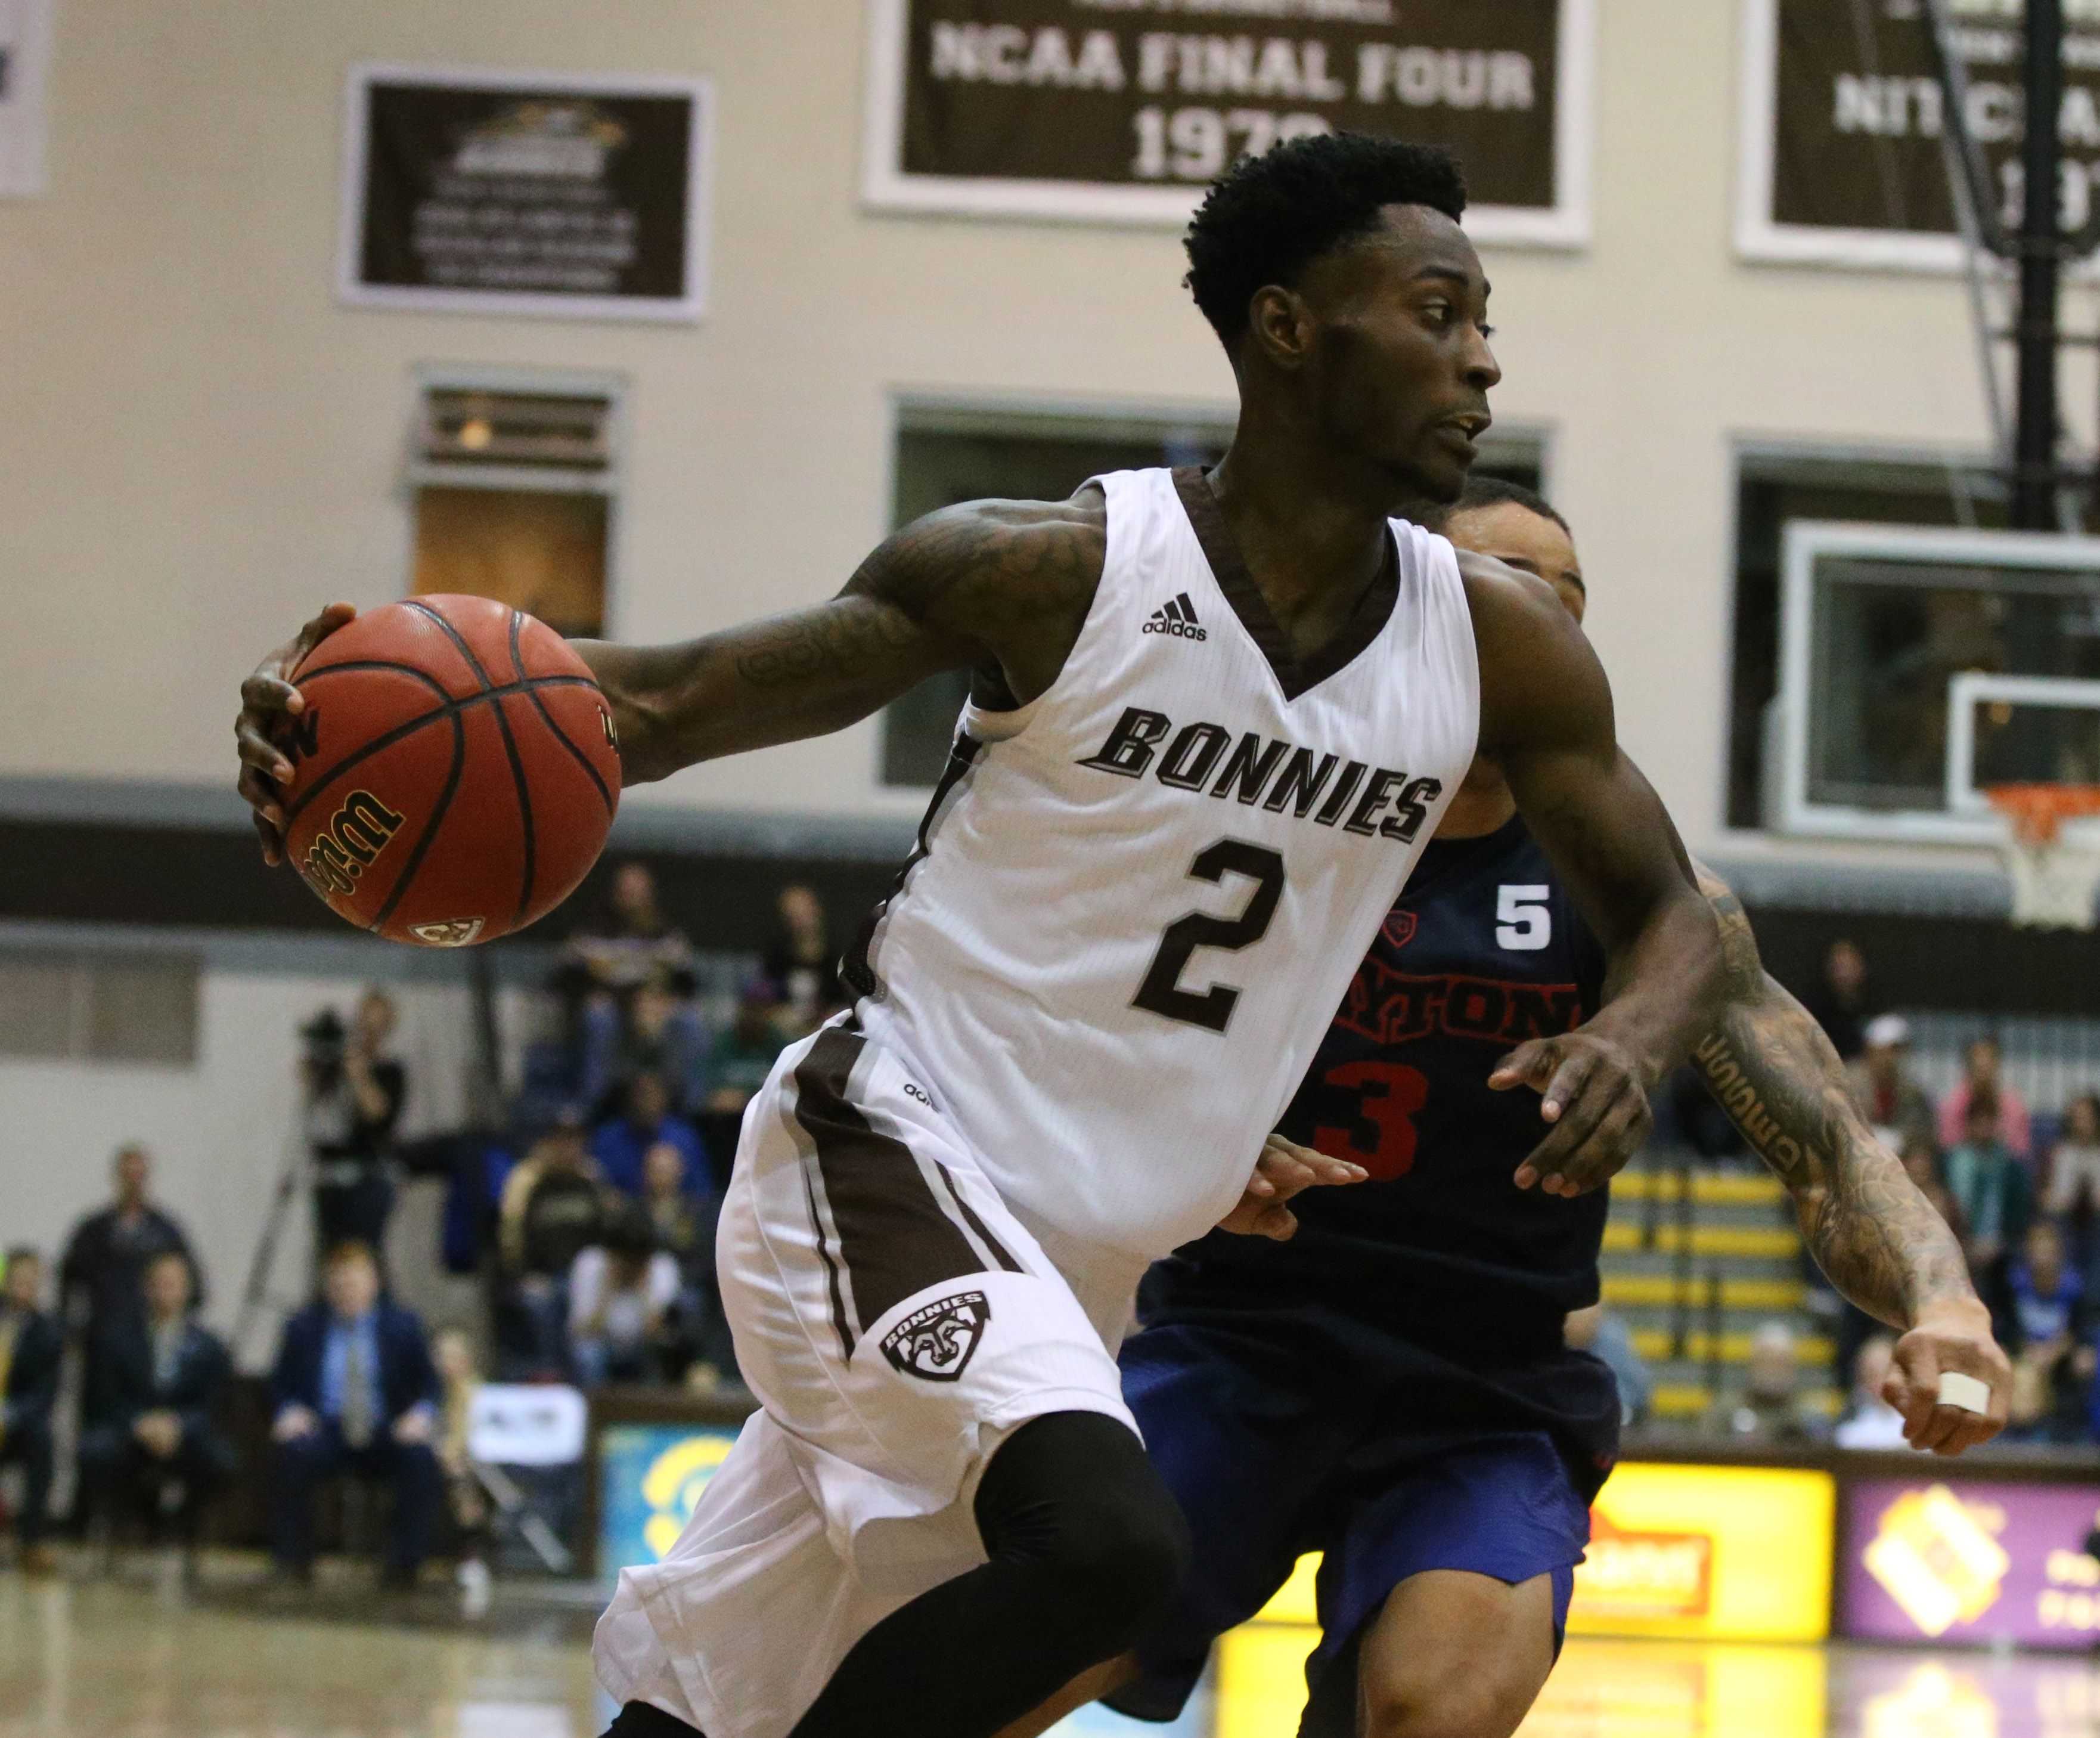 Bonnies to visit Syracuse on Dec. 22